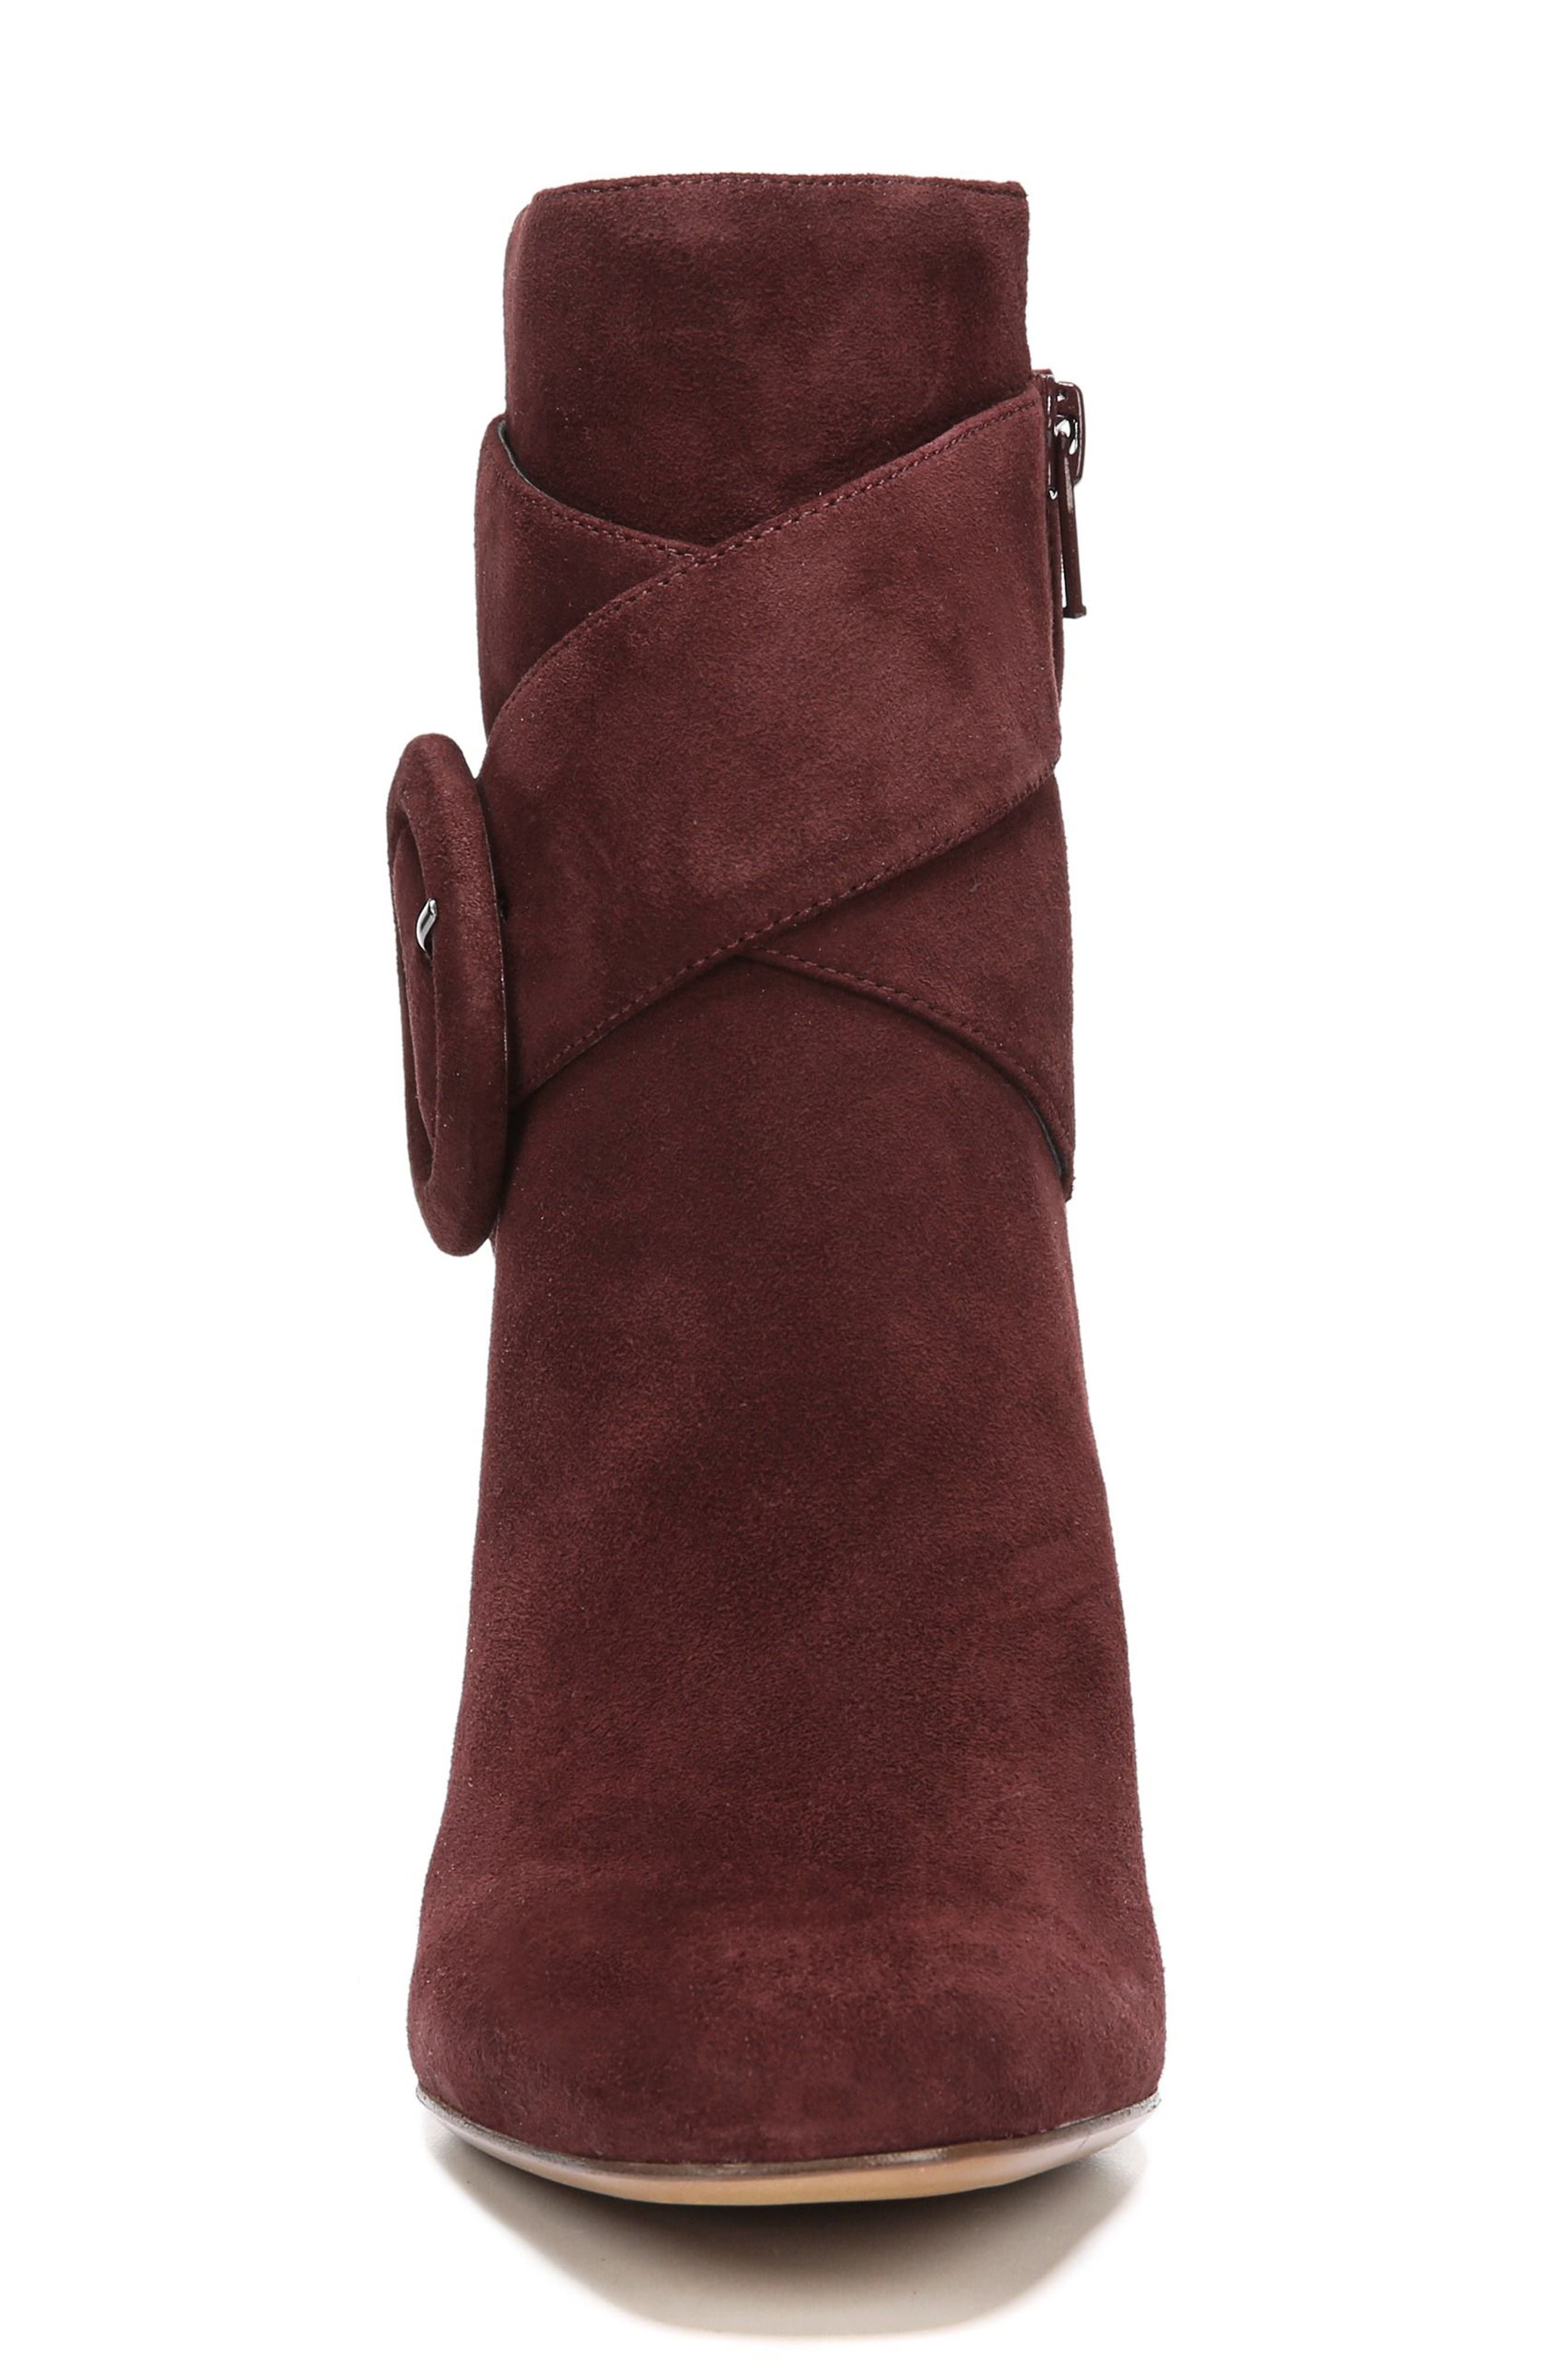 Nautralizer Rae Bootie,                             Alternate thumbnail 4, color,                             Bordo Leather